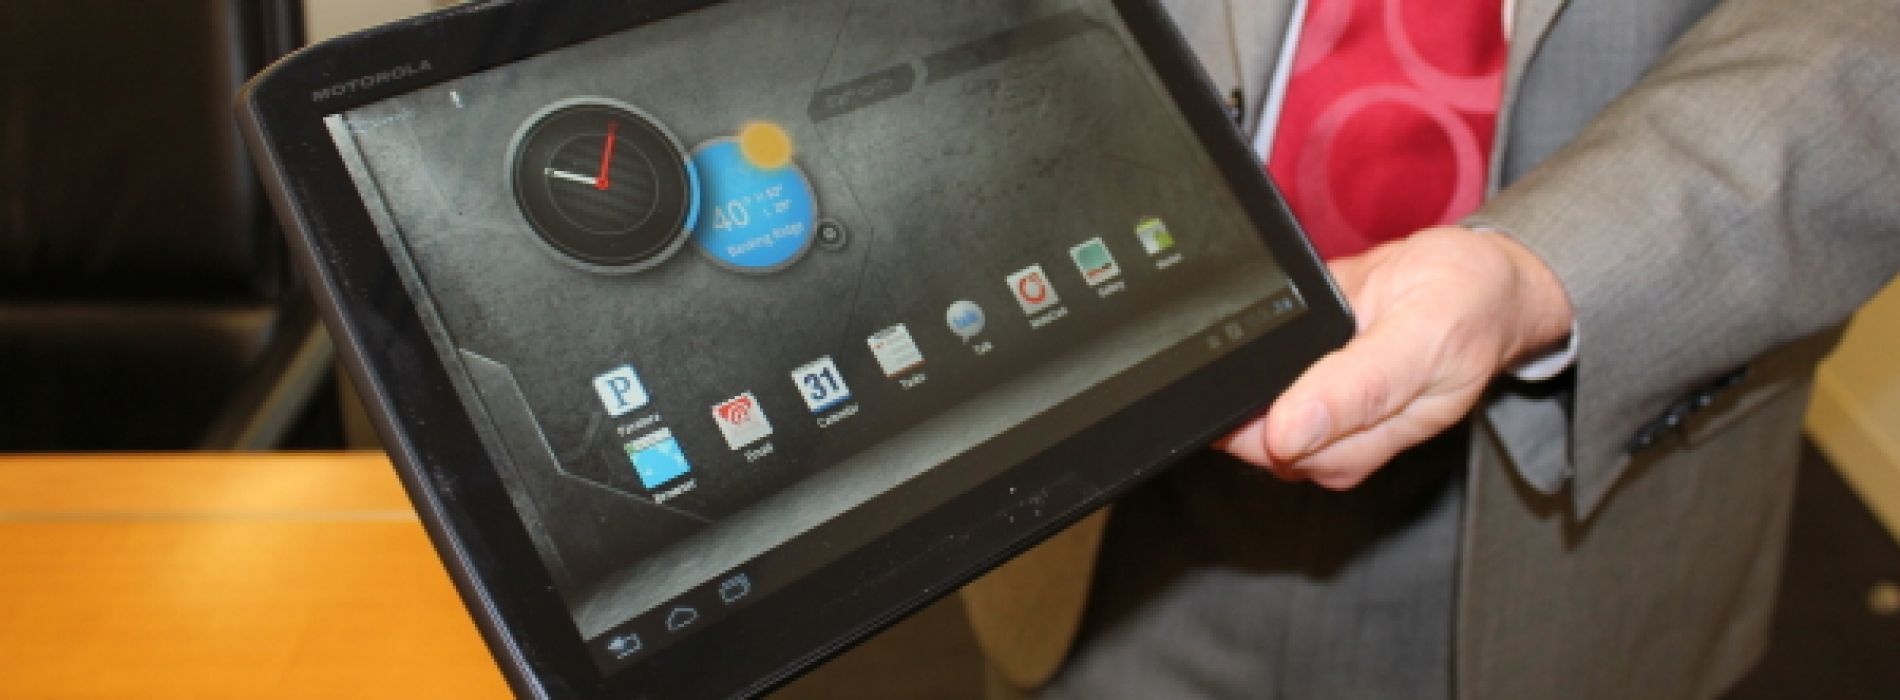 Verizon readying a pair of Droid tablets for December